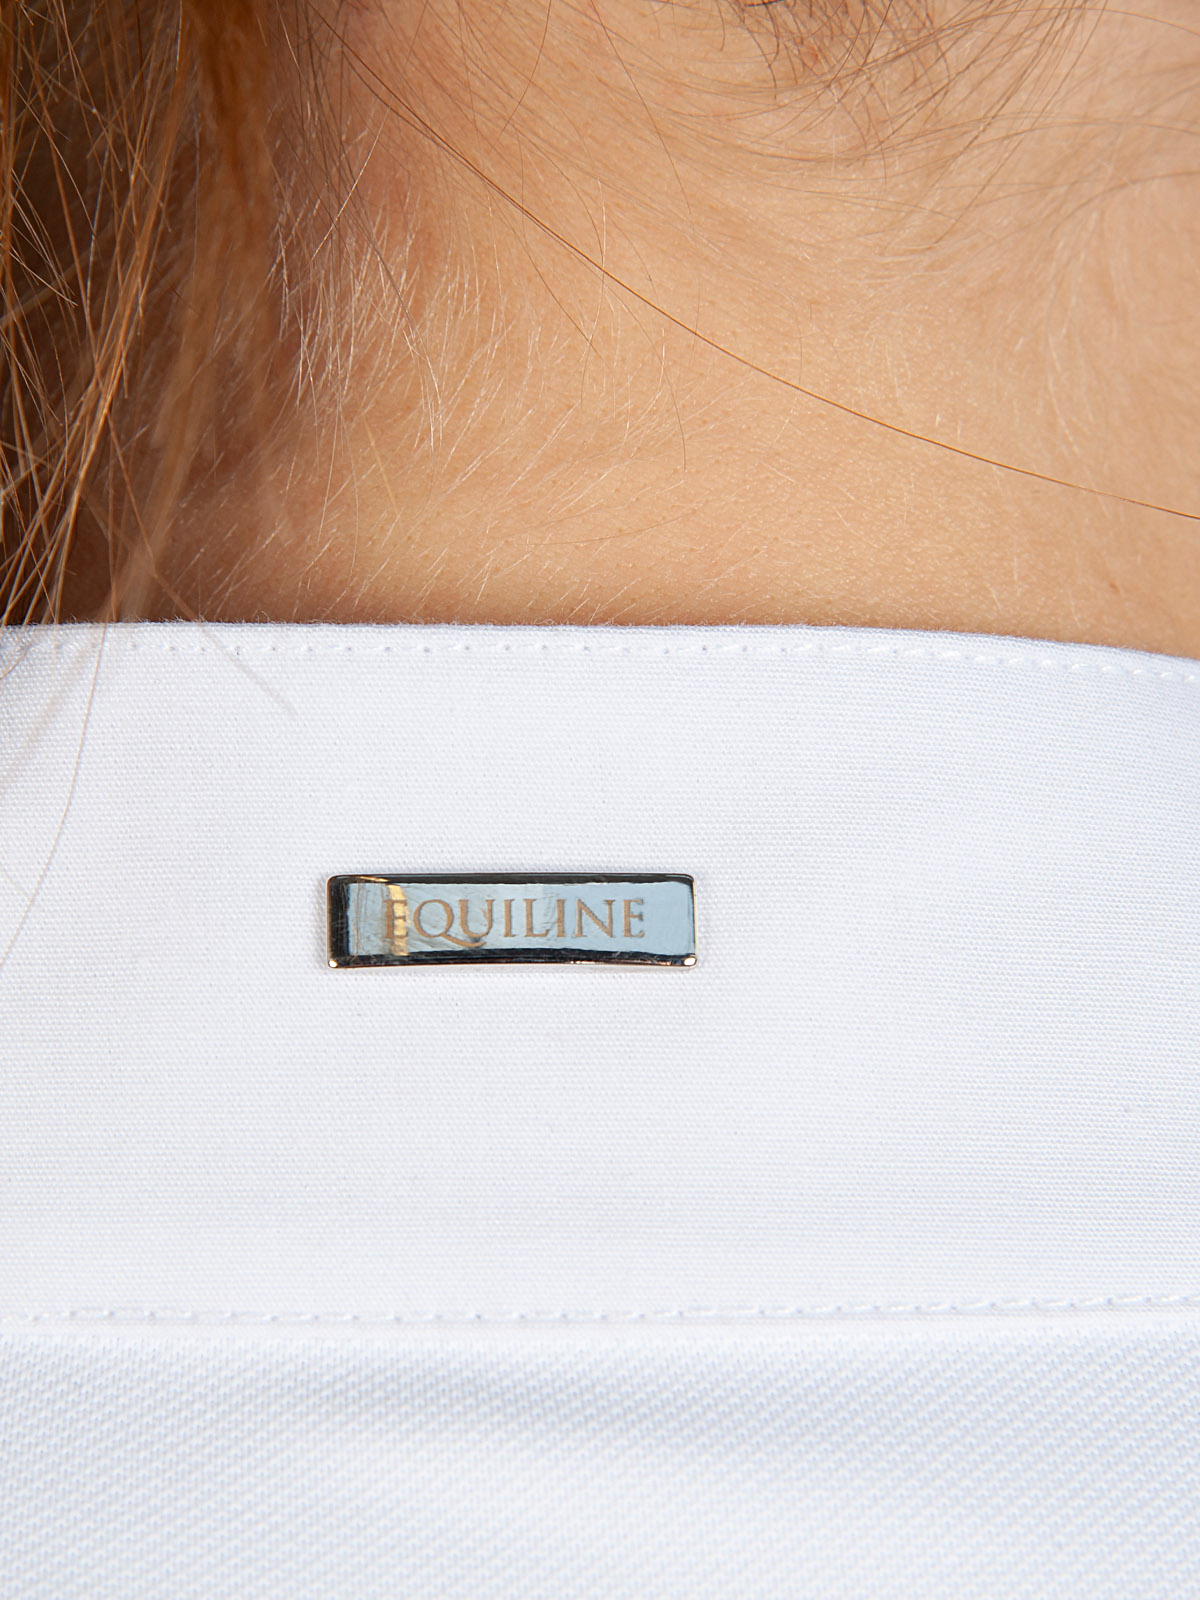 CATHERINE - Women's Show Shirt w/ Silver Detail 6